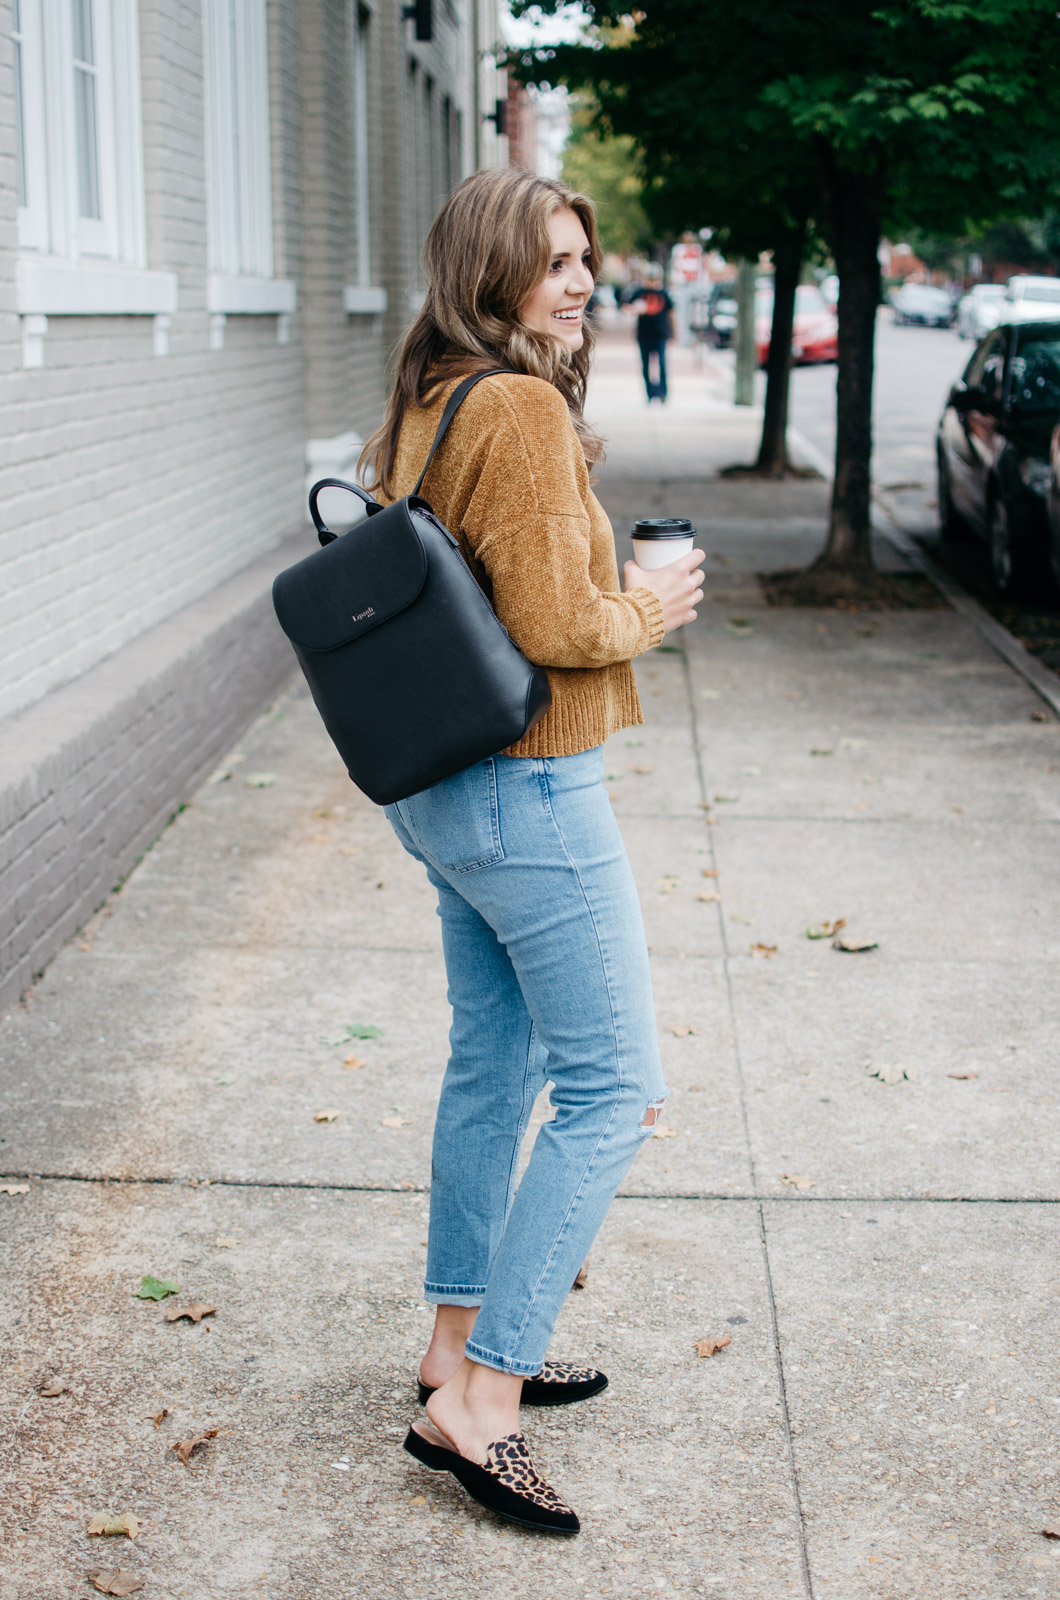 mom jeans fall outfit - fall 2017 outfits | See more trendy fall outfits at bylaurenm.com!